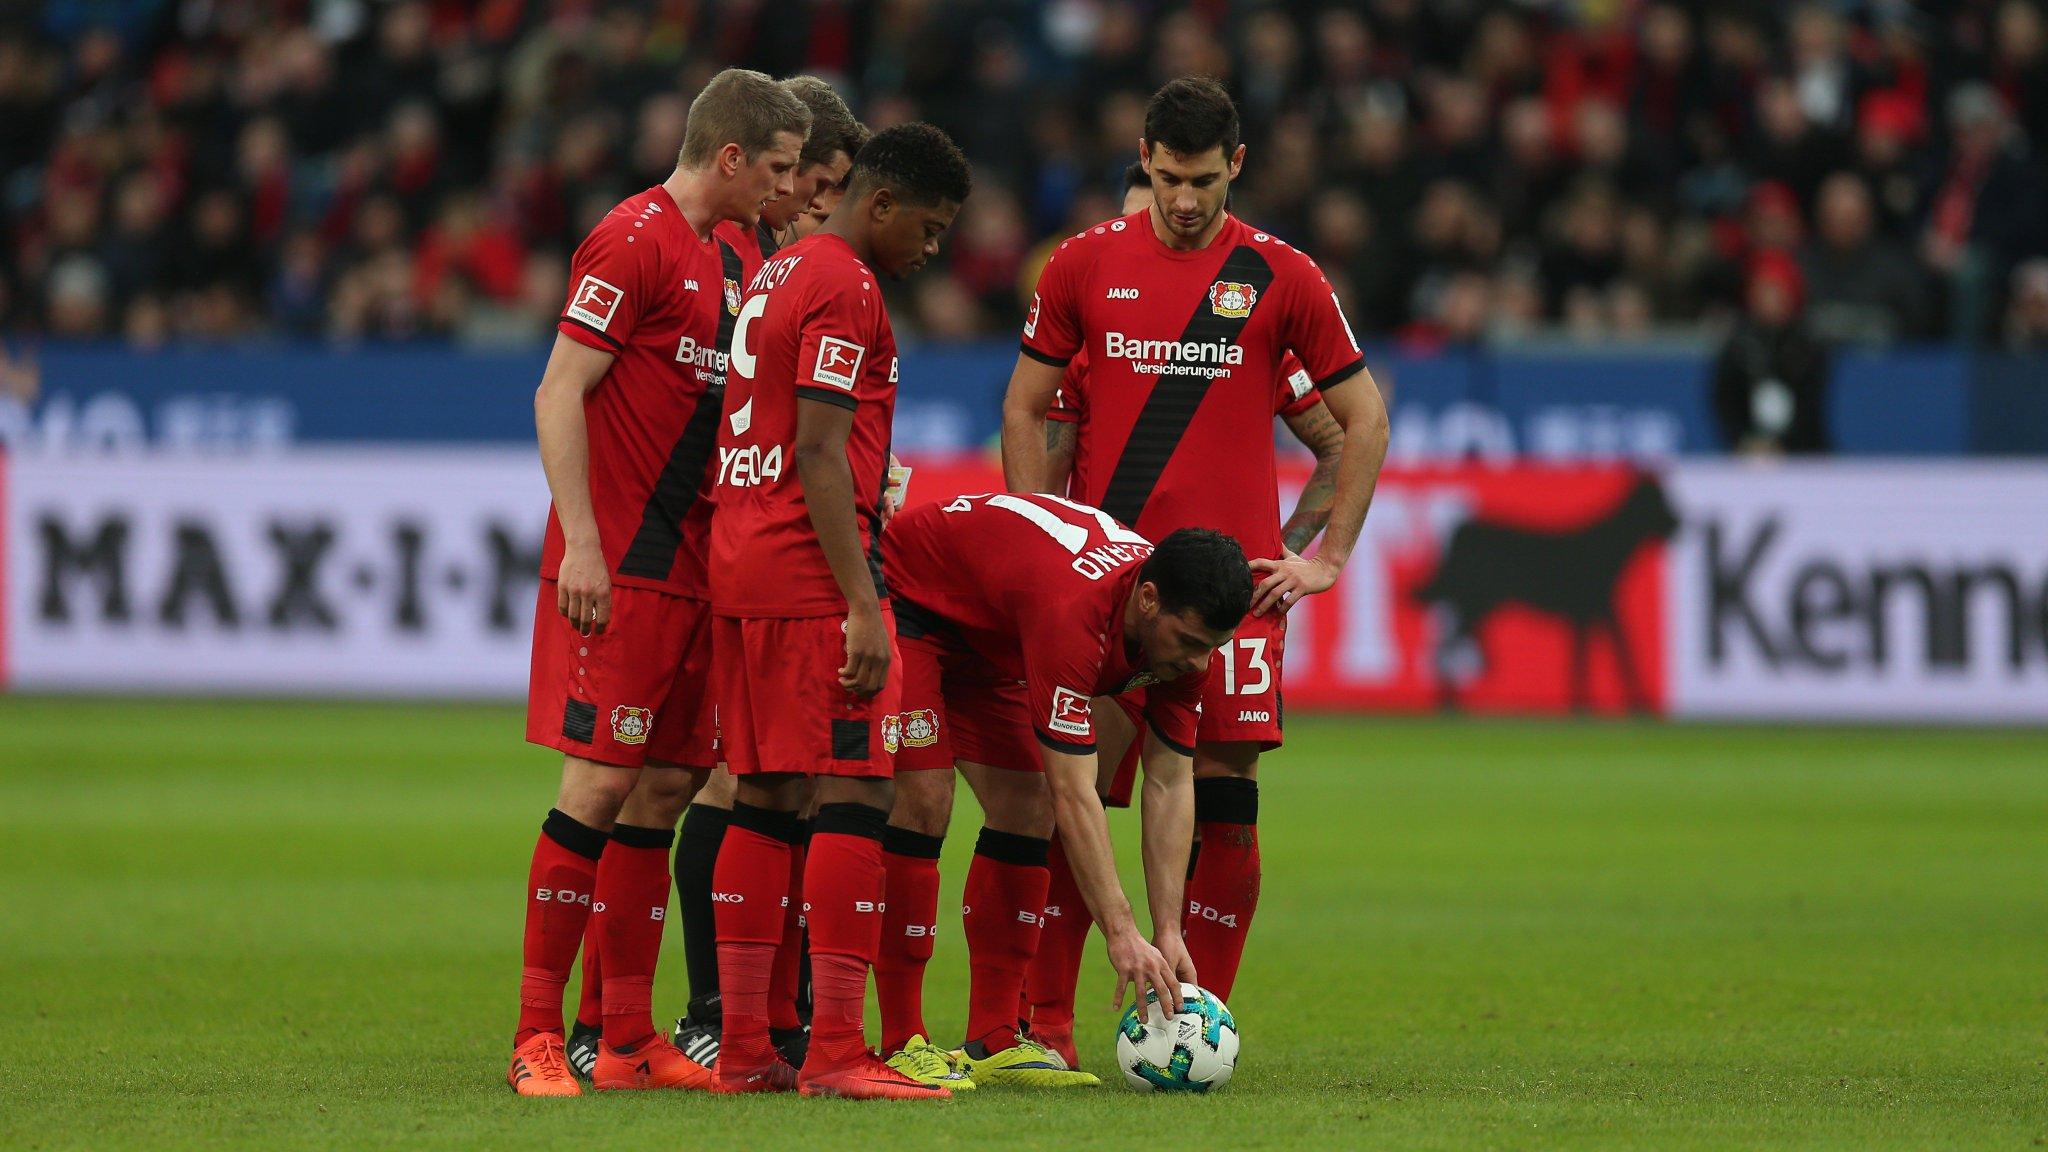 Bayer Leverkusen vs Mainz 05 Highlghts 2-0 Bundesliga 28 January 2018